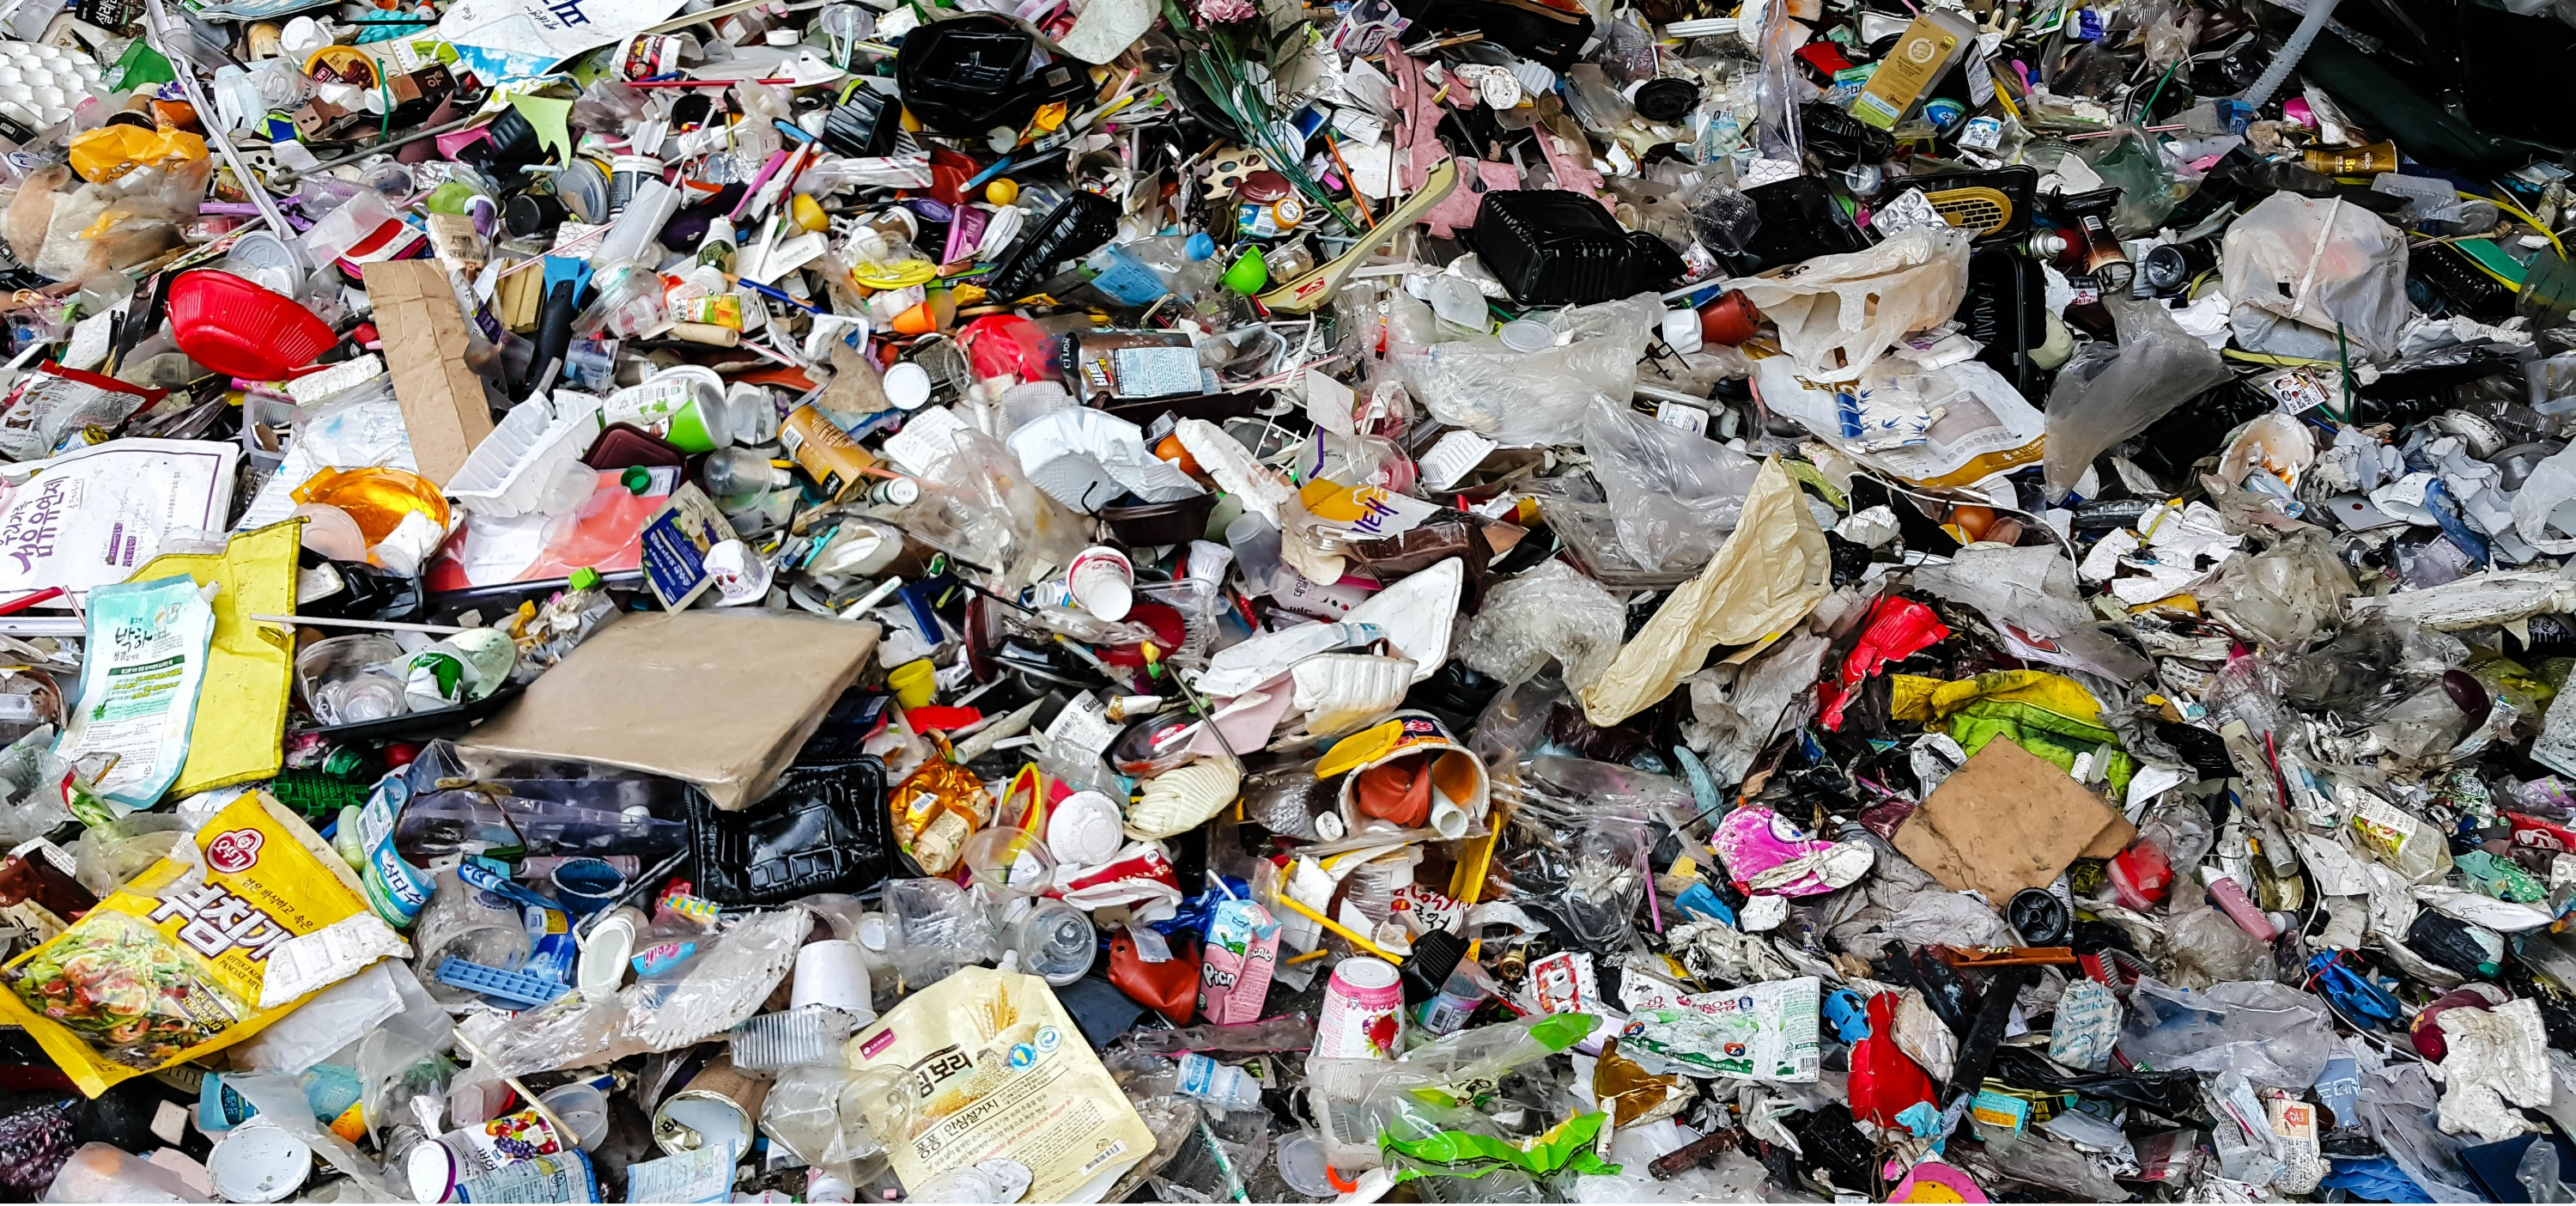 landfill treasure hunts  novel microorganisms could be the